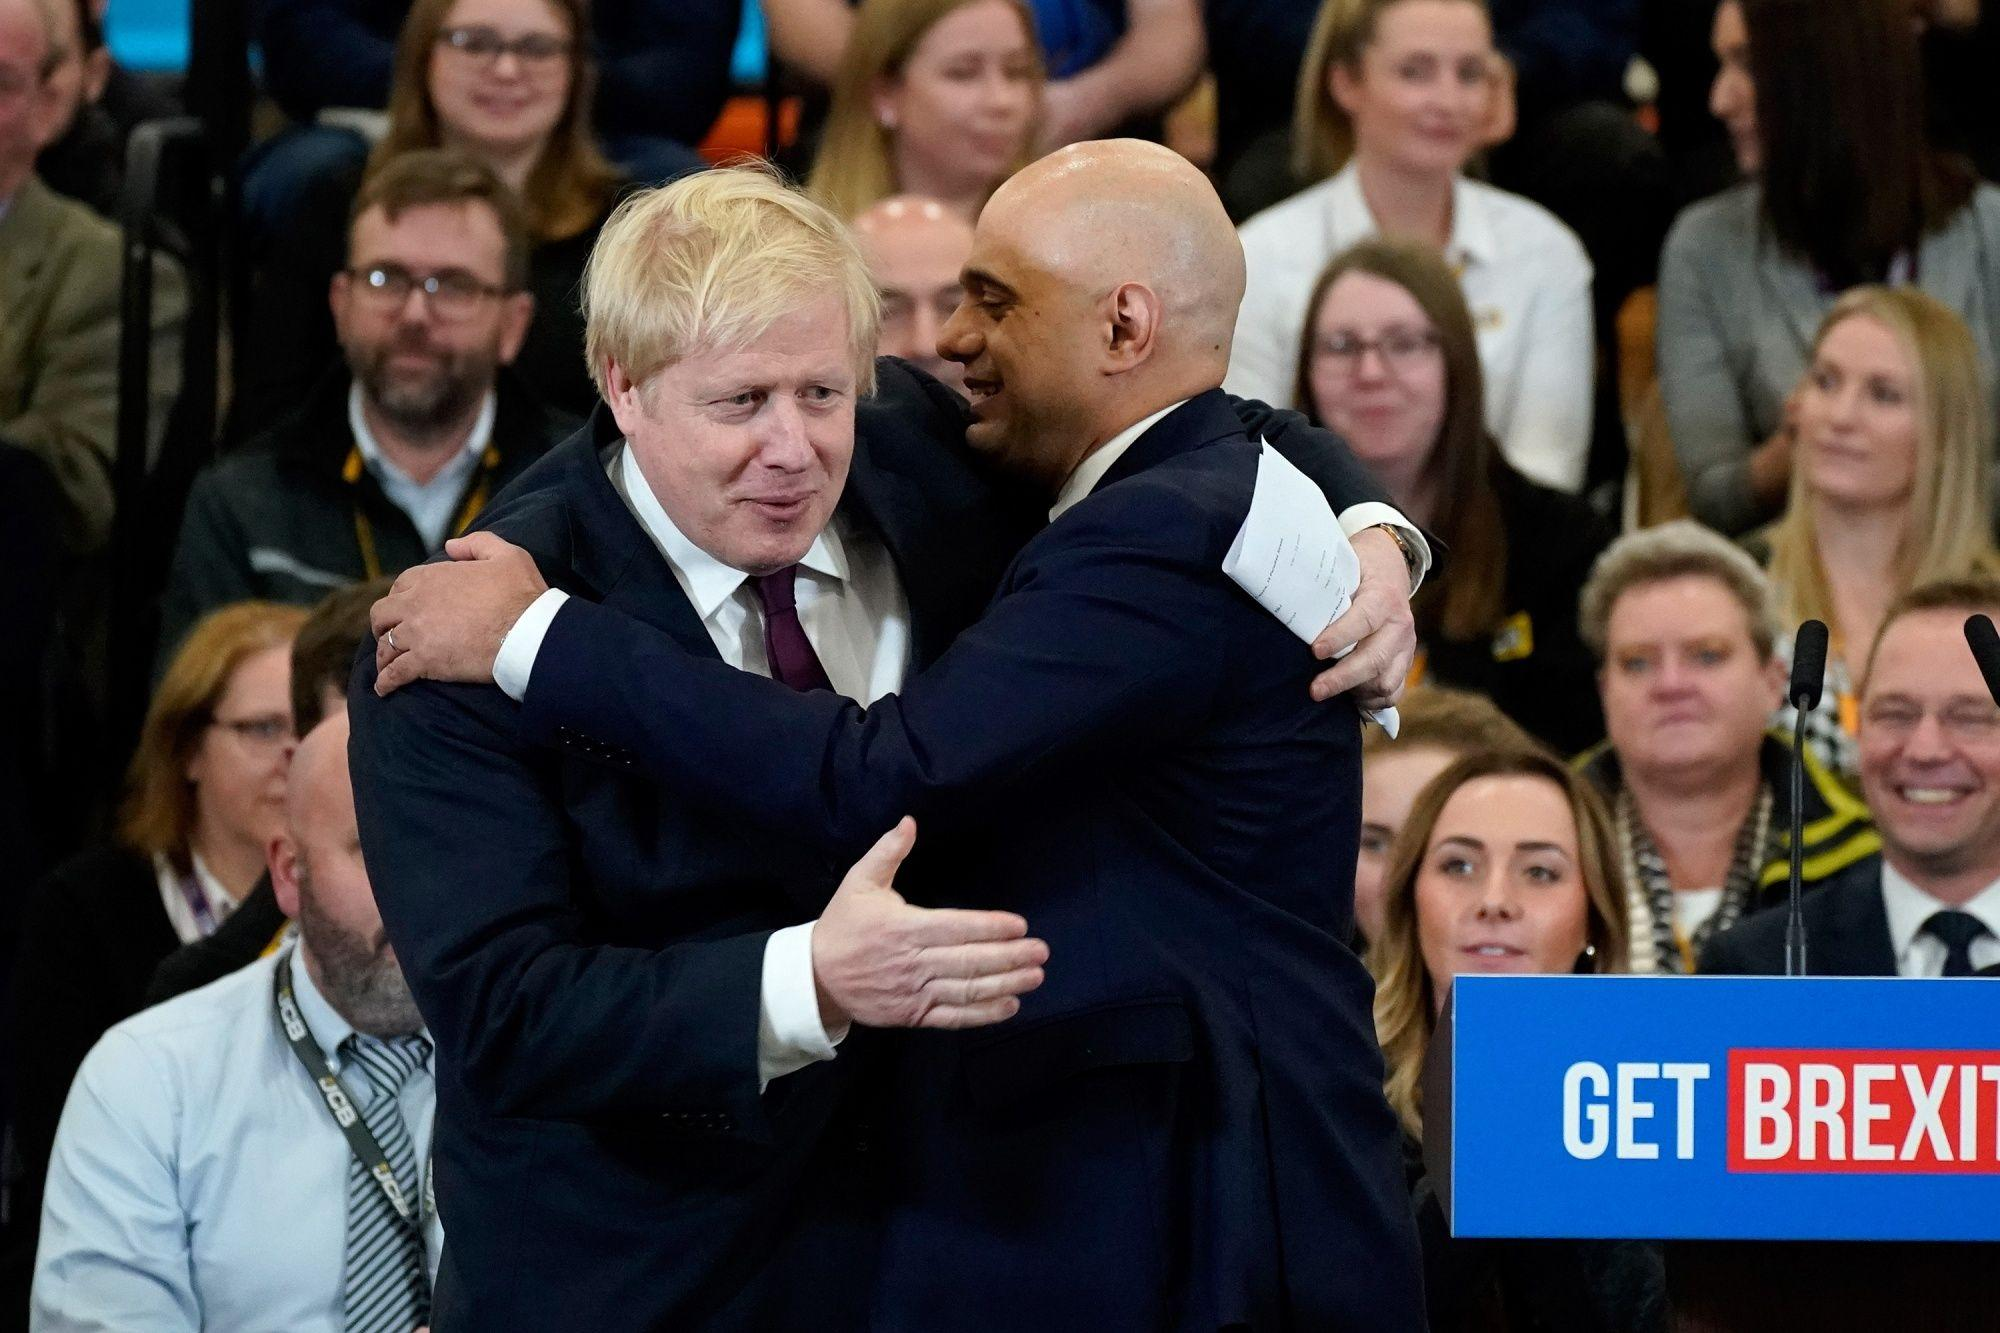 With Javid's Departure, Boris Johnson Really Has Seized Control